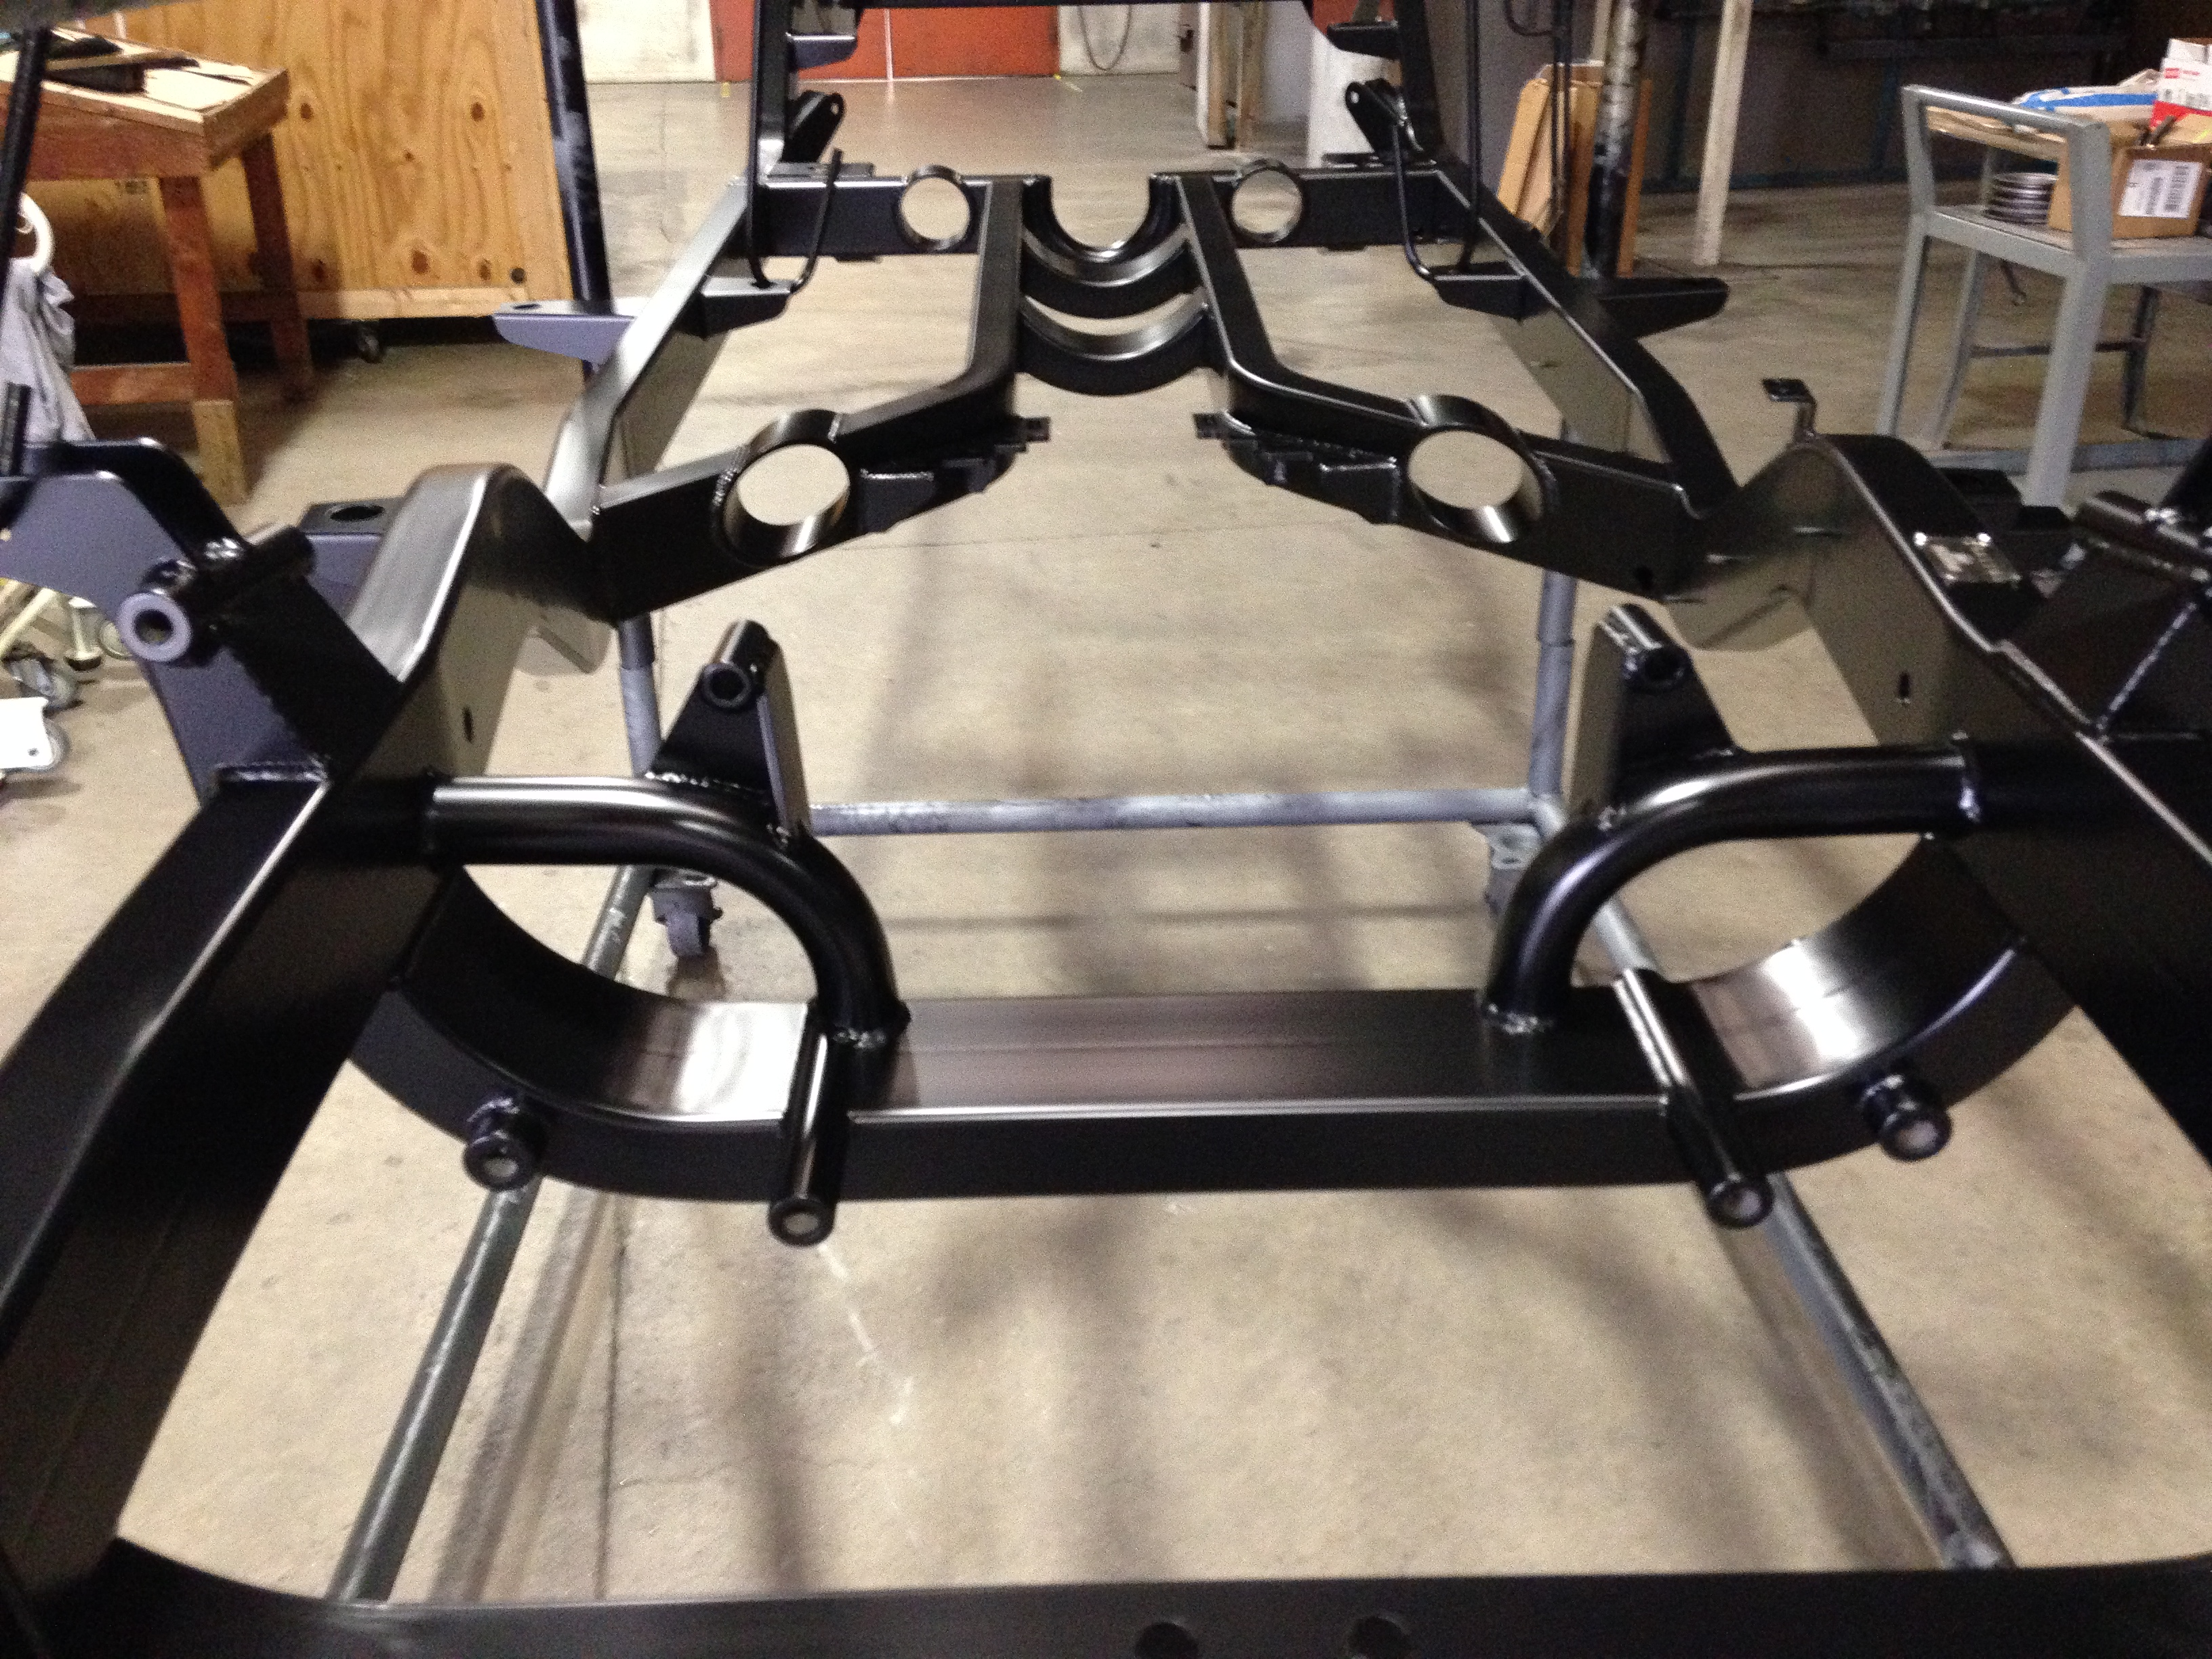 1955 Chevy Frame Restored Powder Coating Xtreme Temperature coatings CT